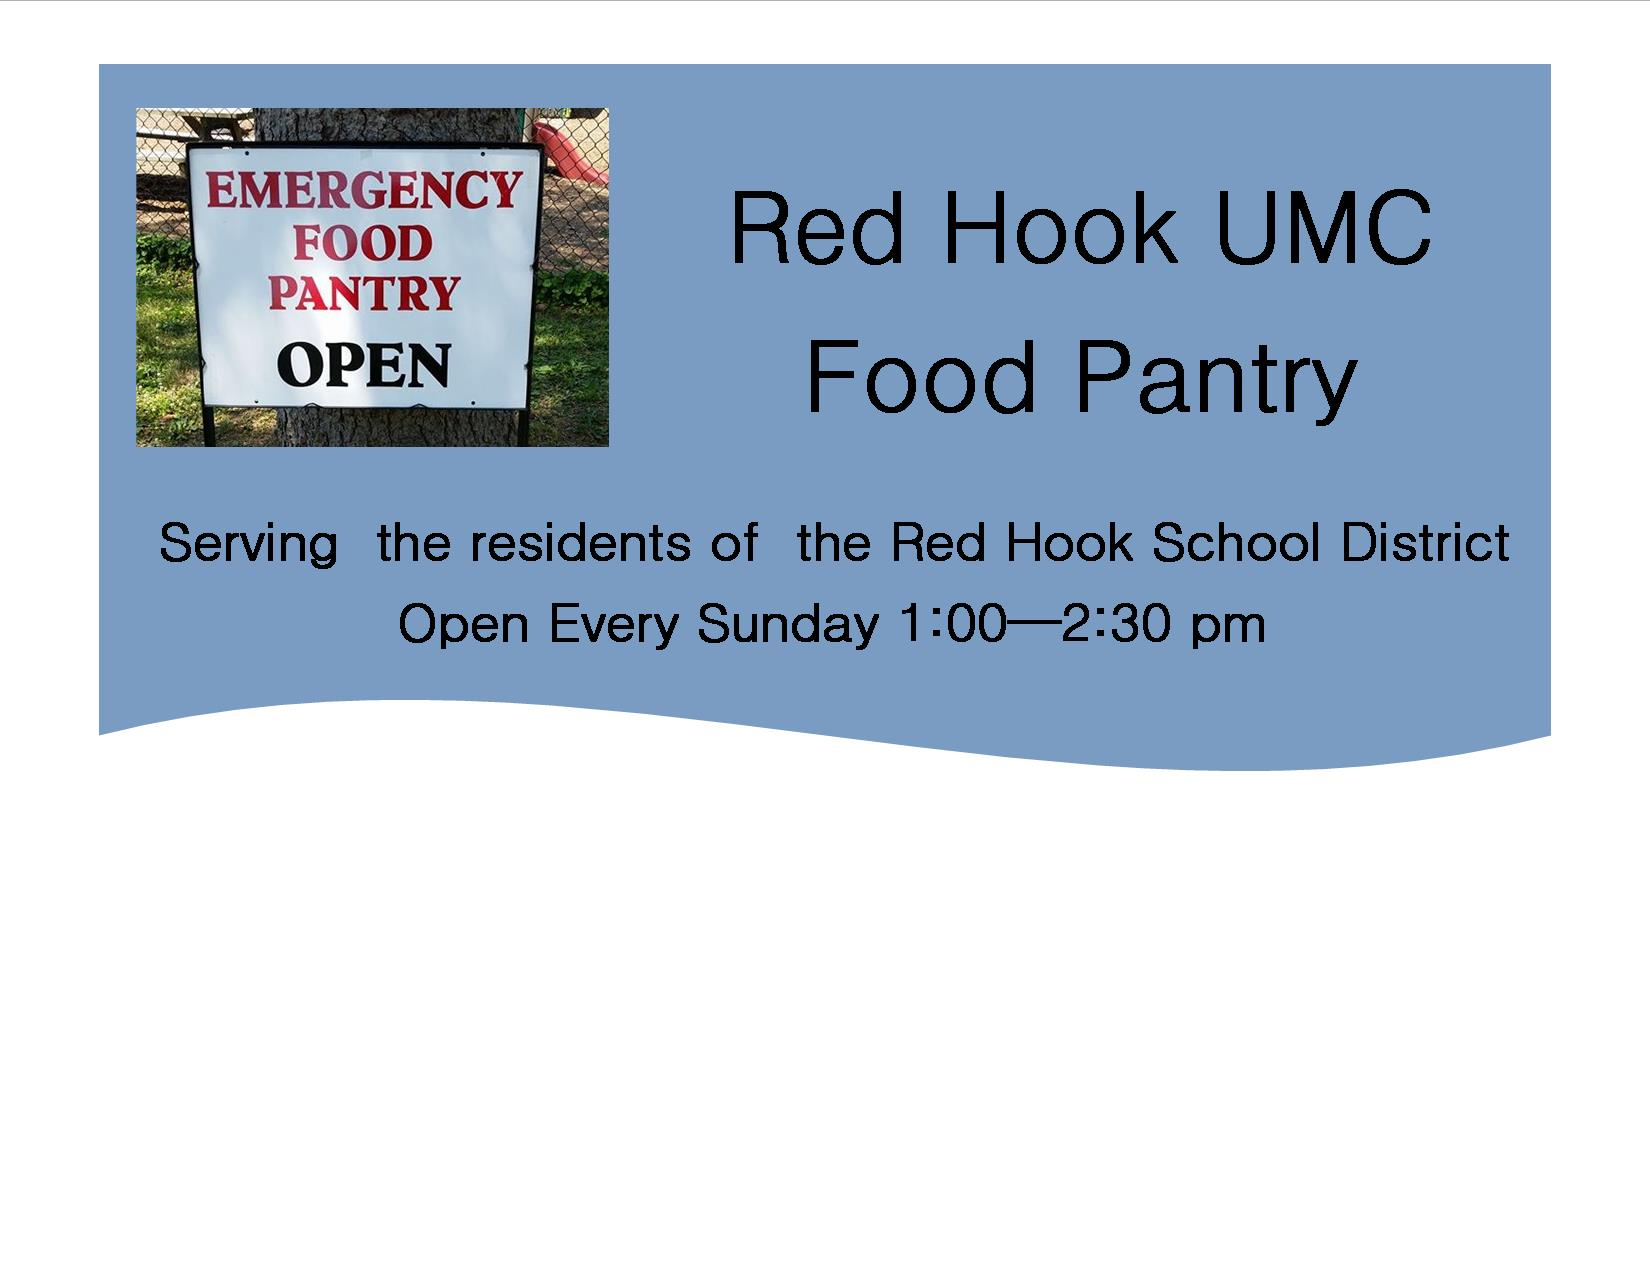 Red Hook UMC Food Pantry